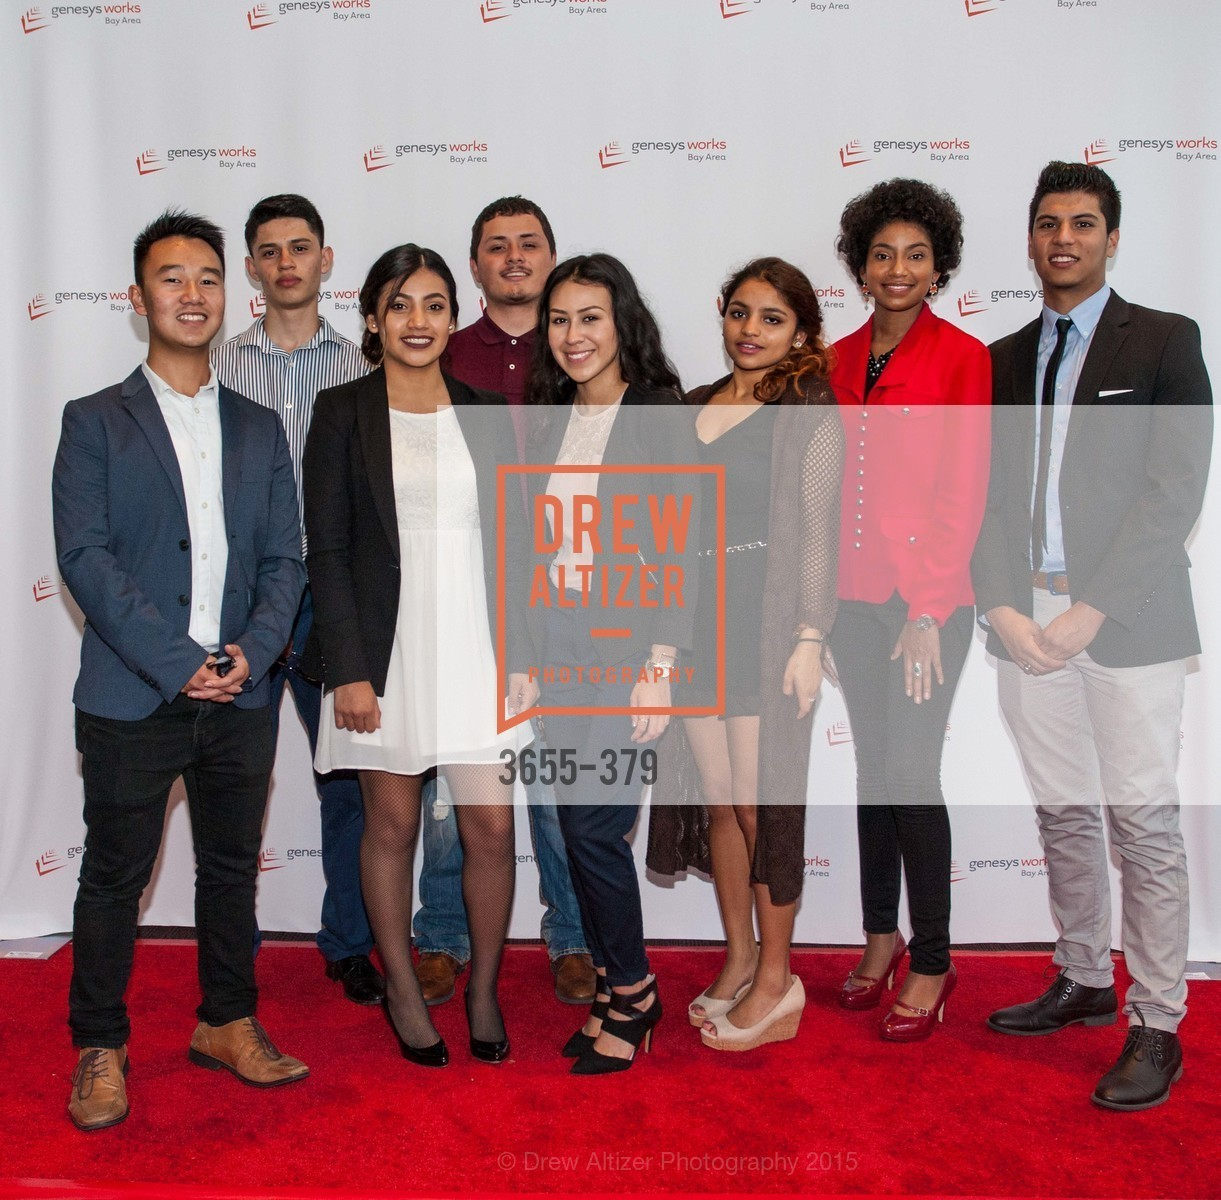 Michael Nguyen, Kateryn Raymundo, Hannah McKellar, Eric Martinez, Genesys Works Bay Area Presents BREAKING THROUGH, St. Regis Hotel. 125 3rd St, October 14th, 2015,Drew Altizer, Drew Altizer Photography, full-service agency, private events, San Francisco photographer, photographer california